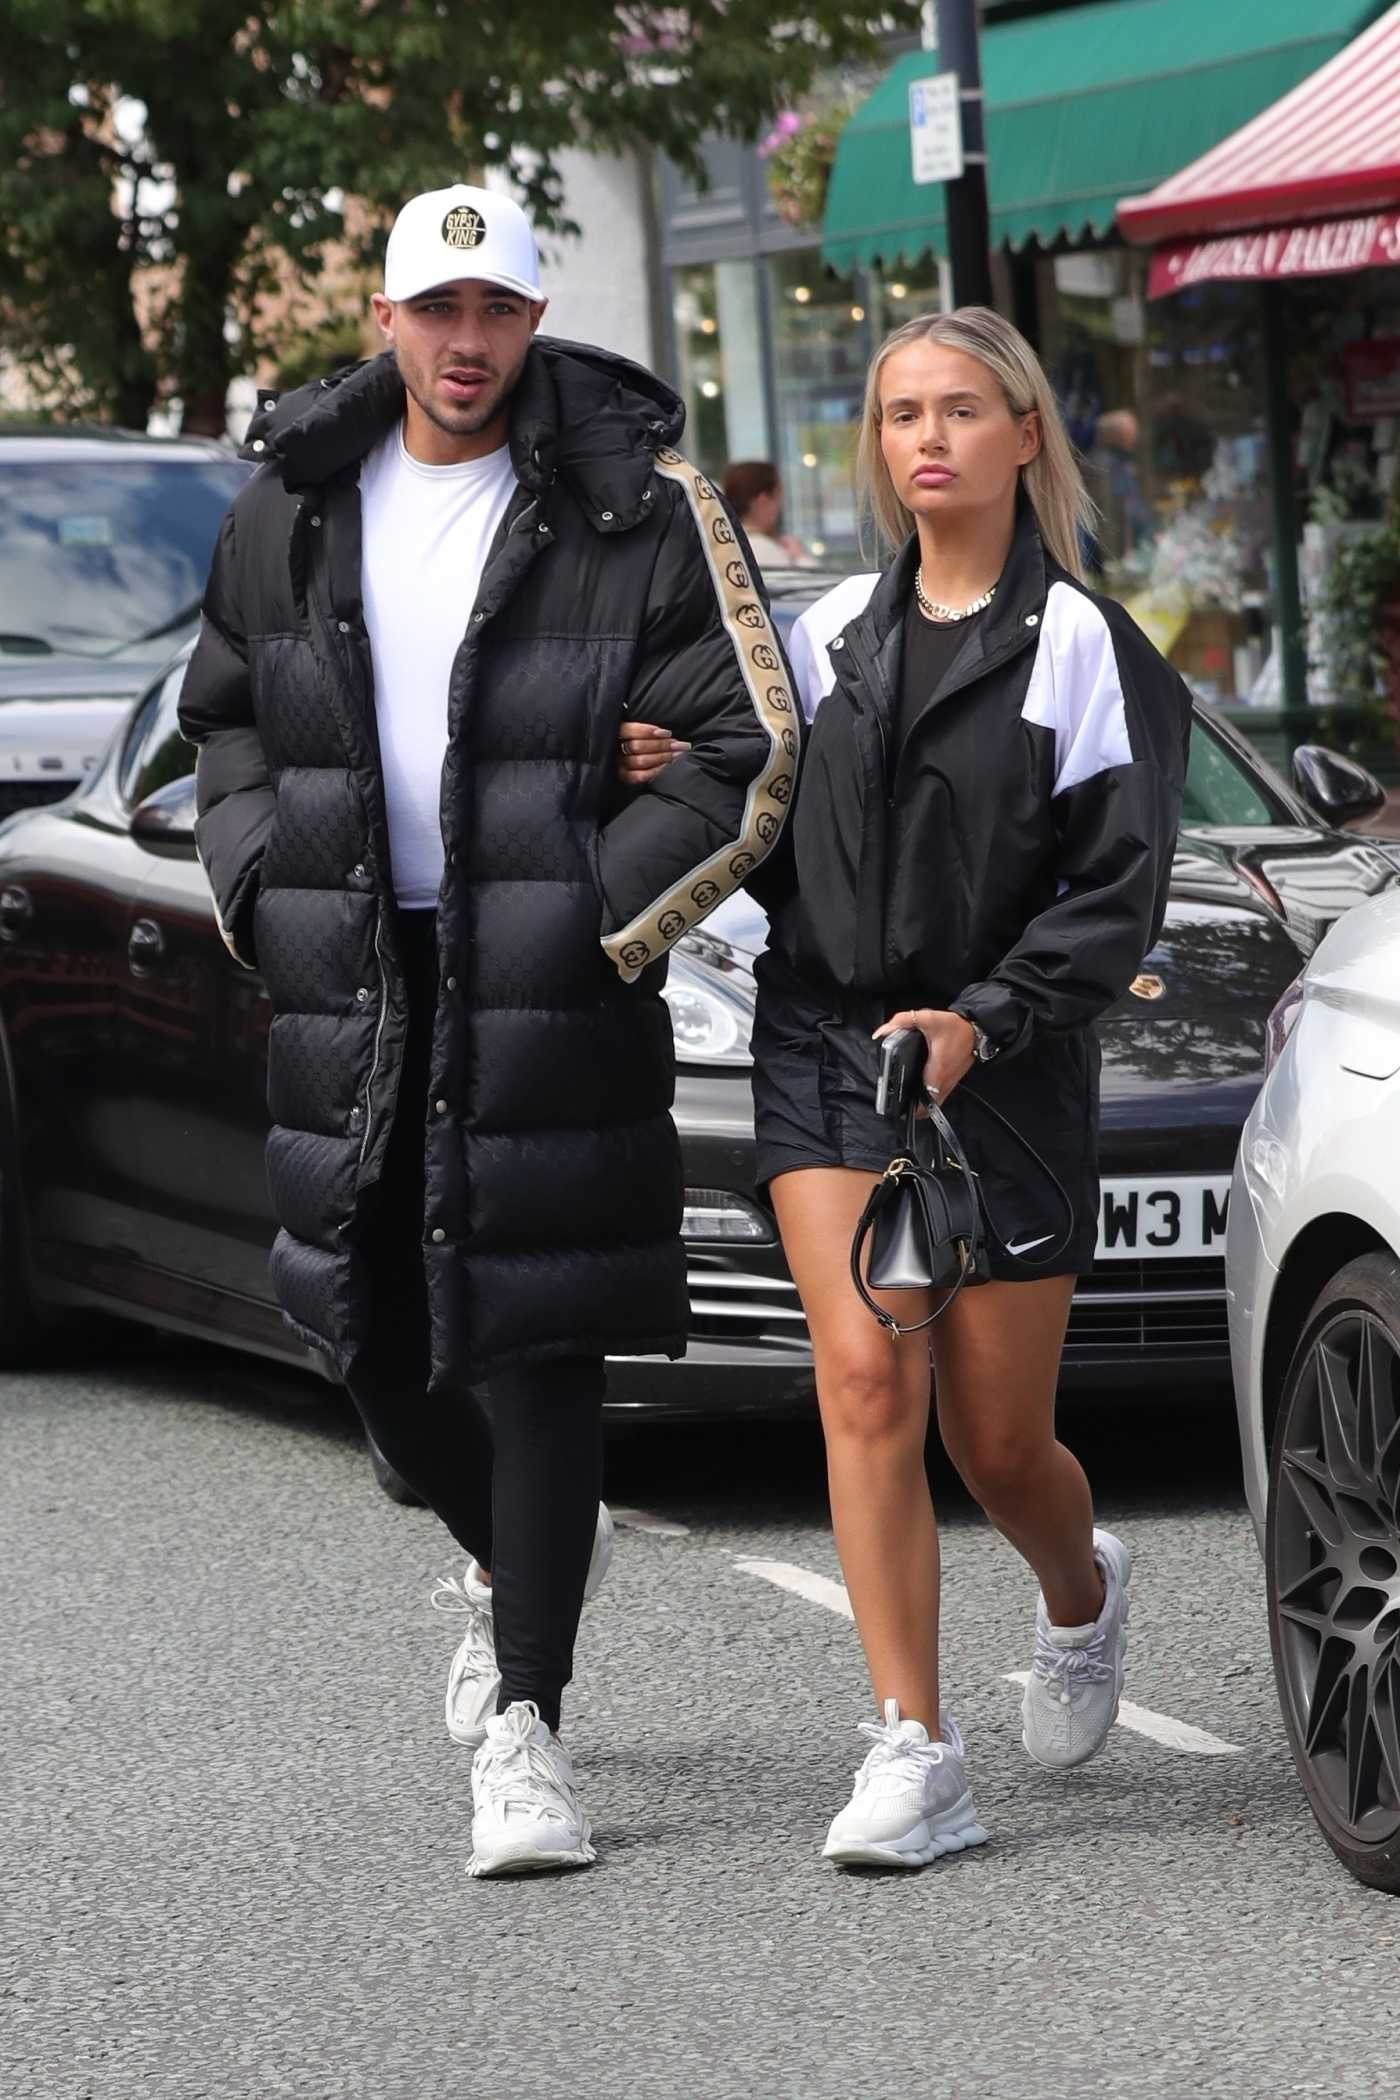 Molly-Mae Hague in a White Sneakers Was Seen Out with Tommy Fury in Cheshire 08/05/2020